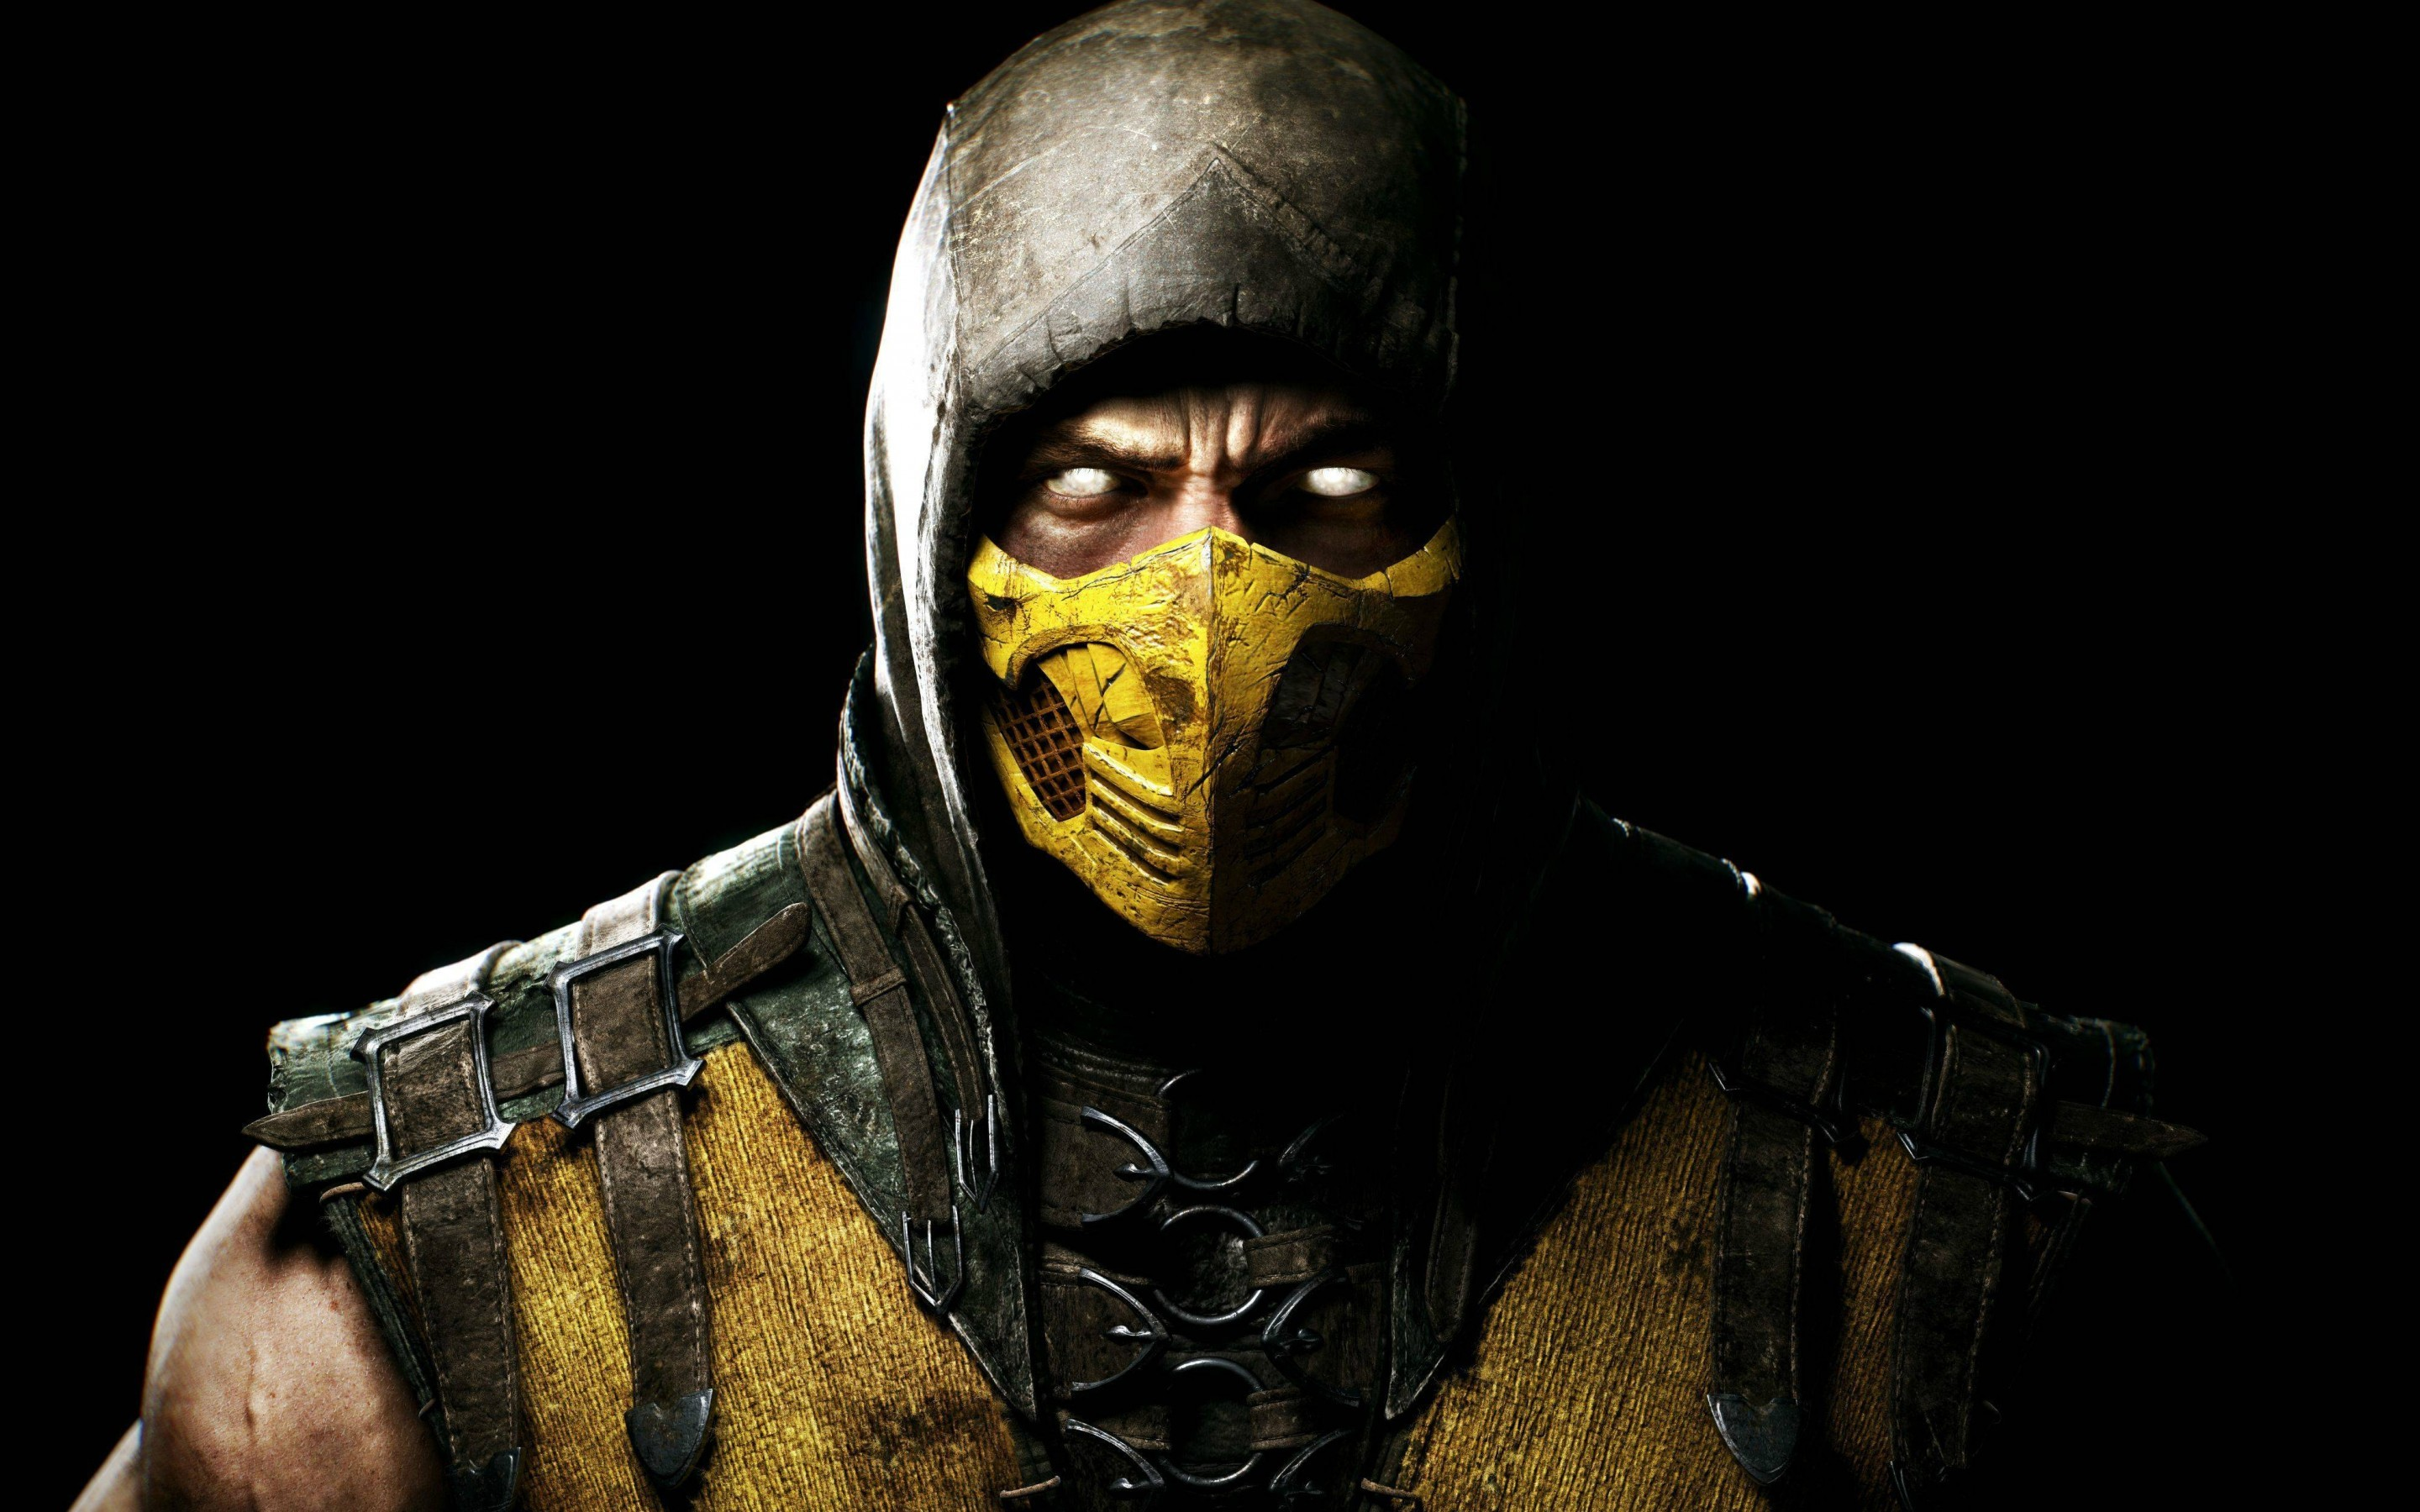 Mortal Kombat X Scorpion Wallpaper 74 Images